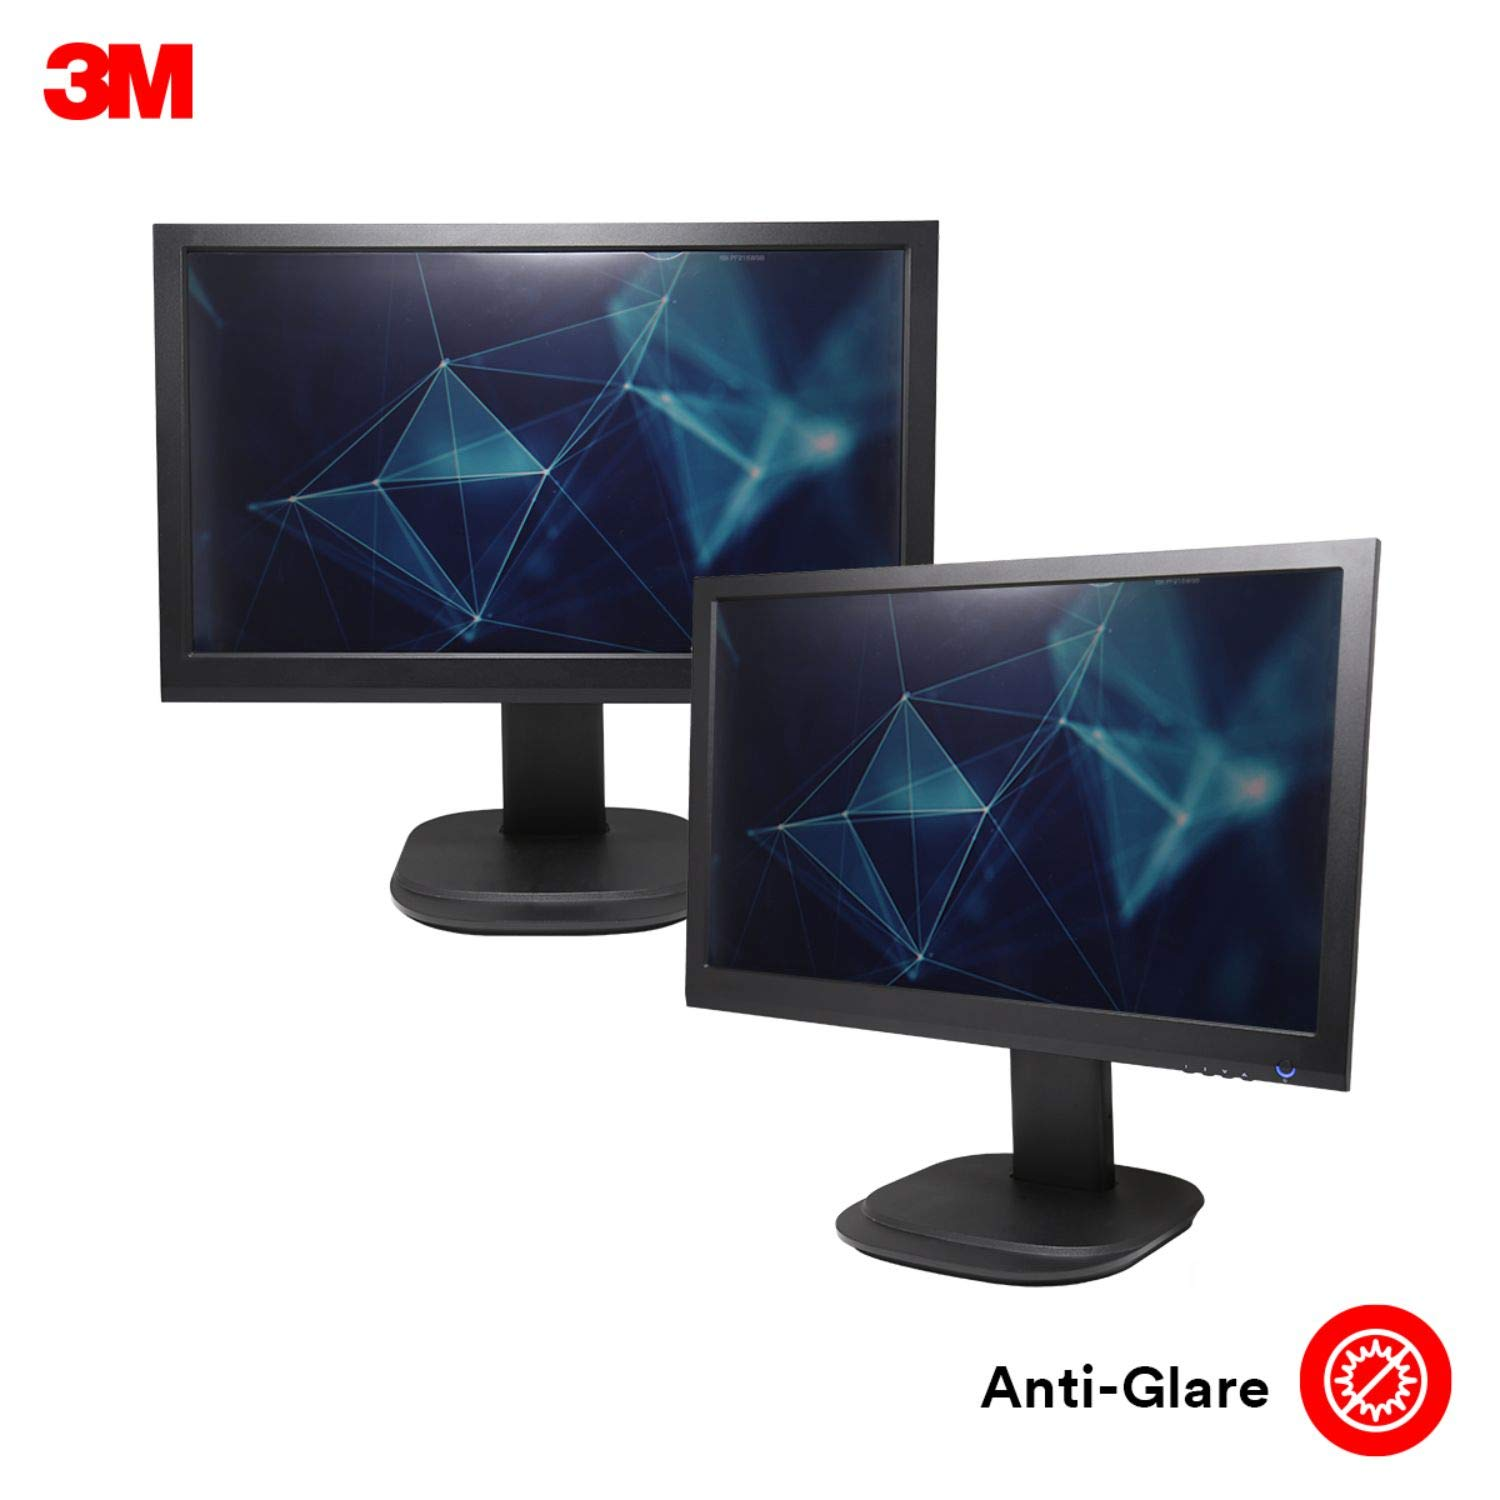 "3M Anti-Glare Filter for 21.5"" Widescreen Monitor (AG215W9B)"